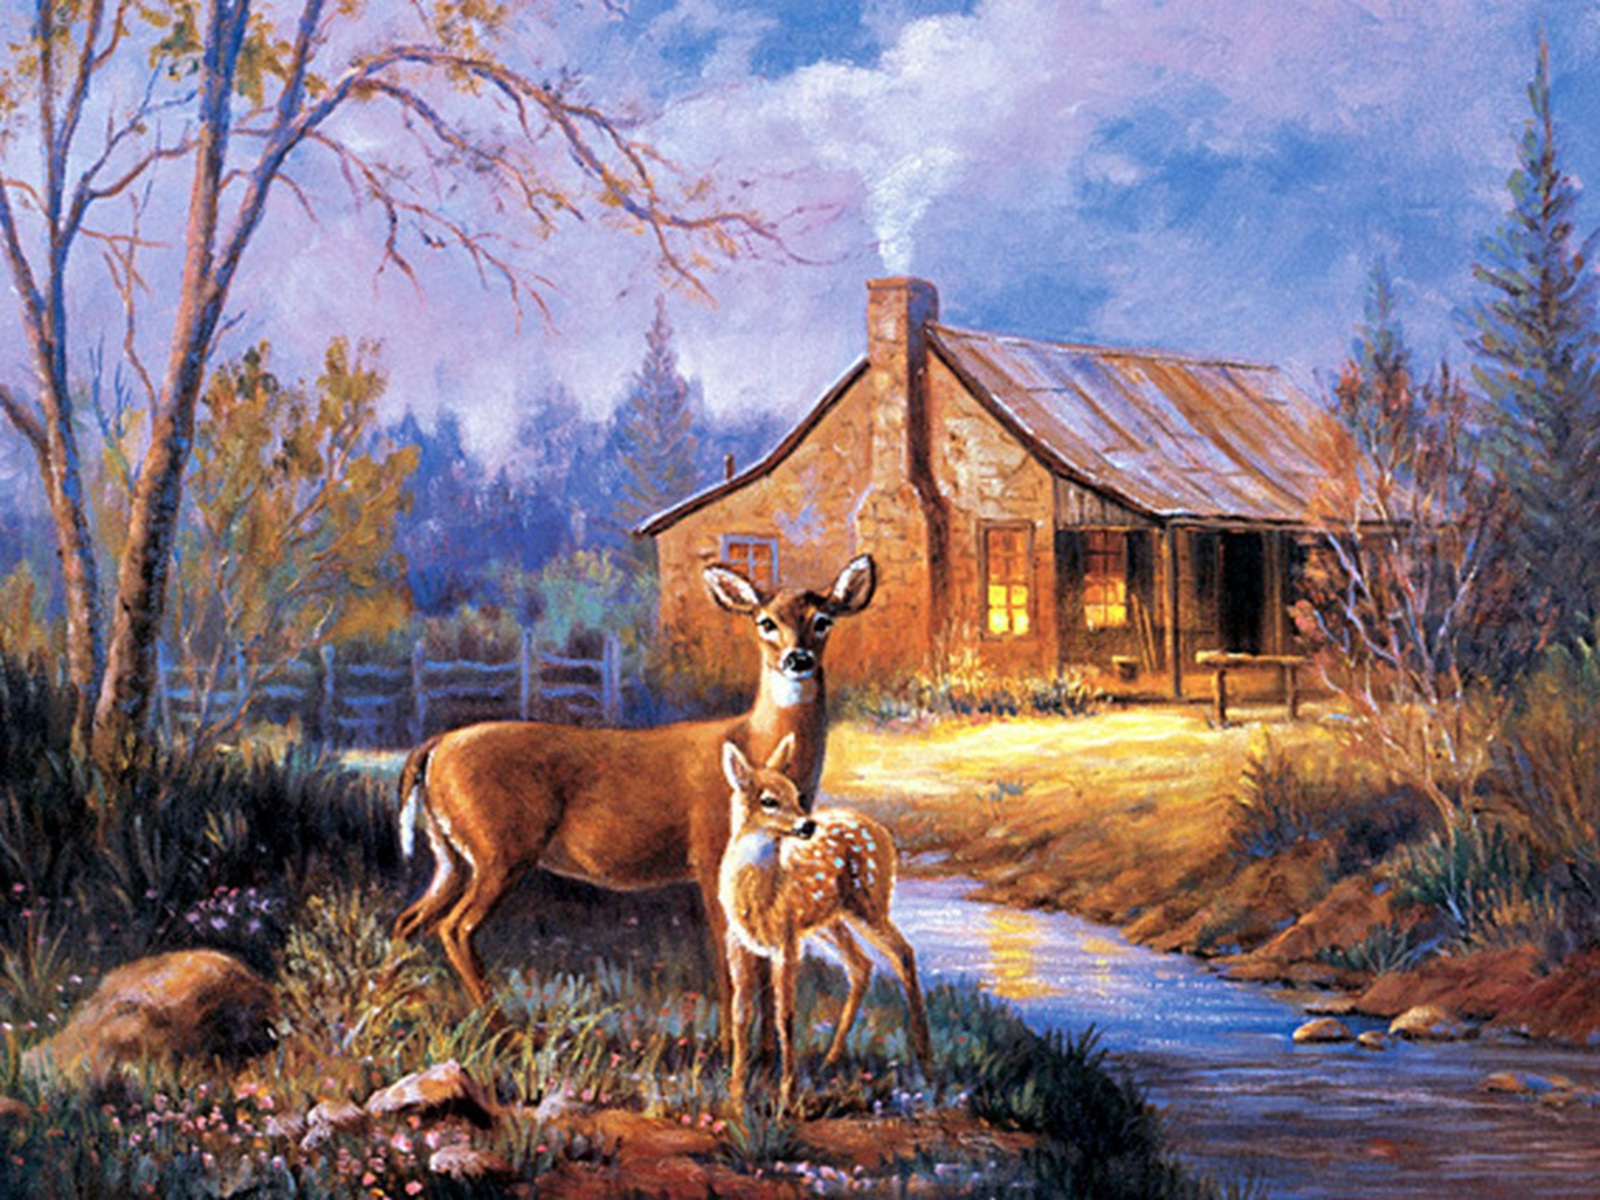 deer wallpapers,deer wallpaper,whitetail deer wallpaper,deer hunting